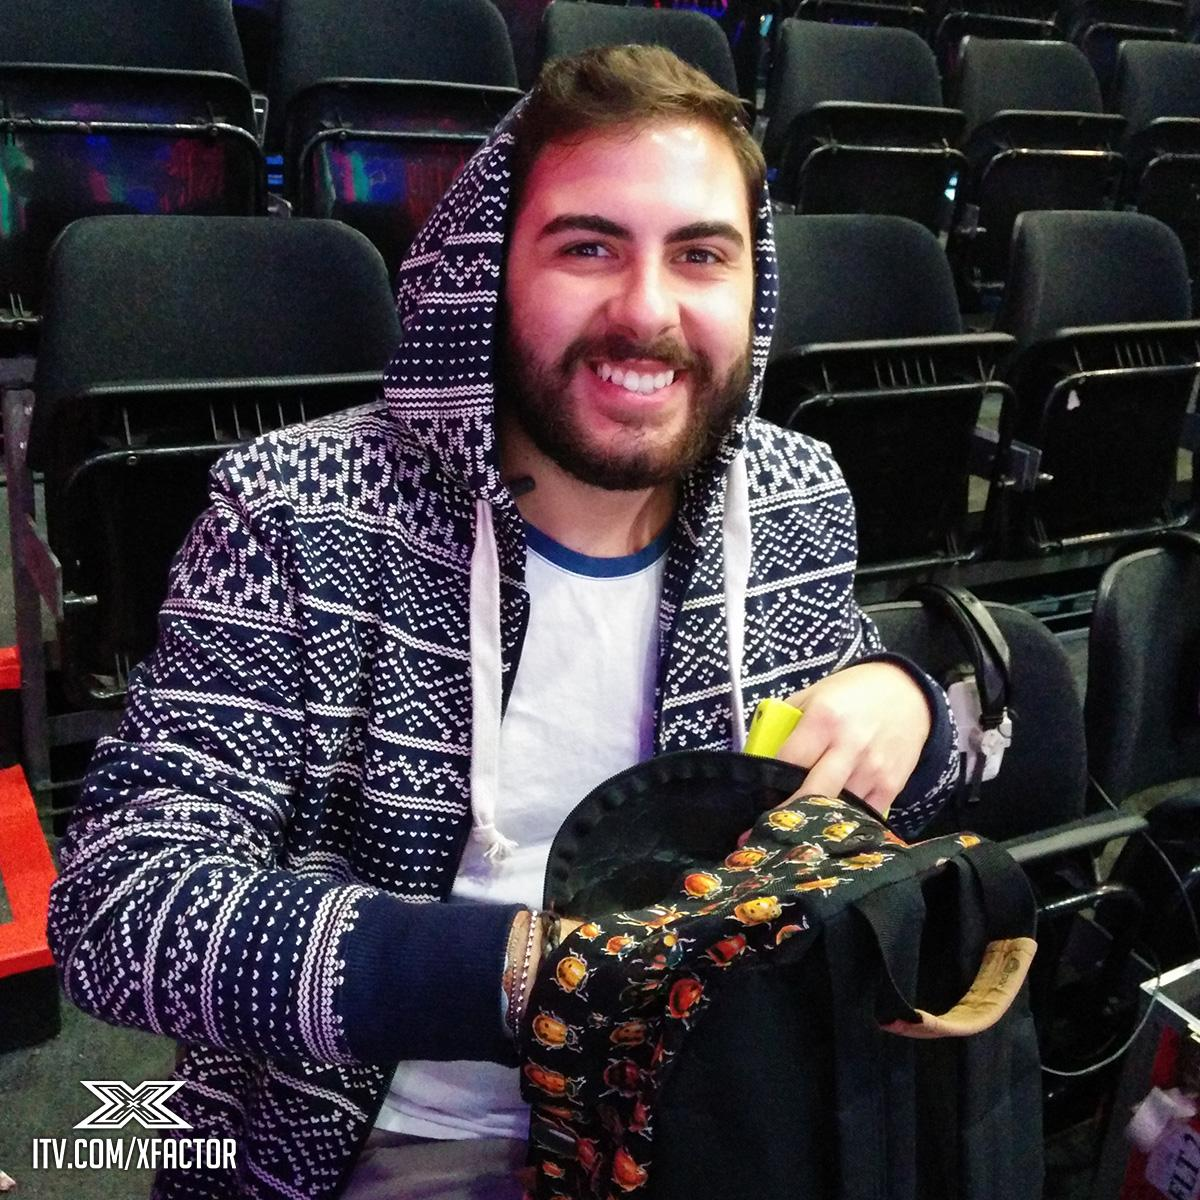 Yesss it's #PugMan @AndreaFaustini1! P.s. ❤ that rucksack 🐞 #GuessTheXFactorContestant http://t.co/FWfFaFf7bx